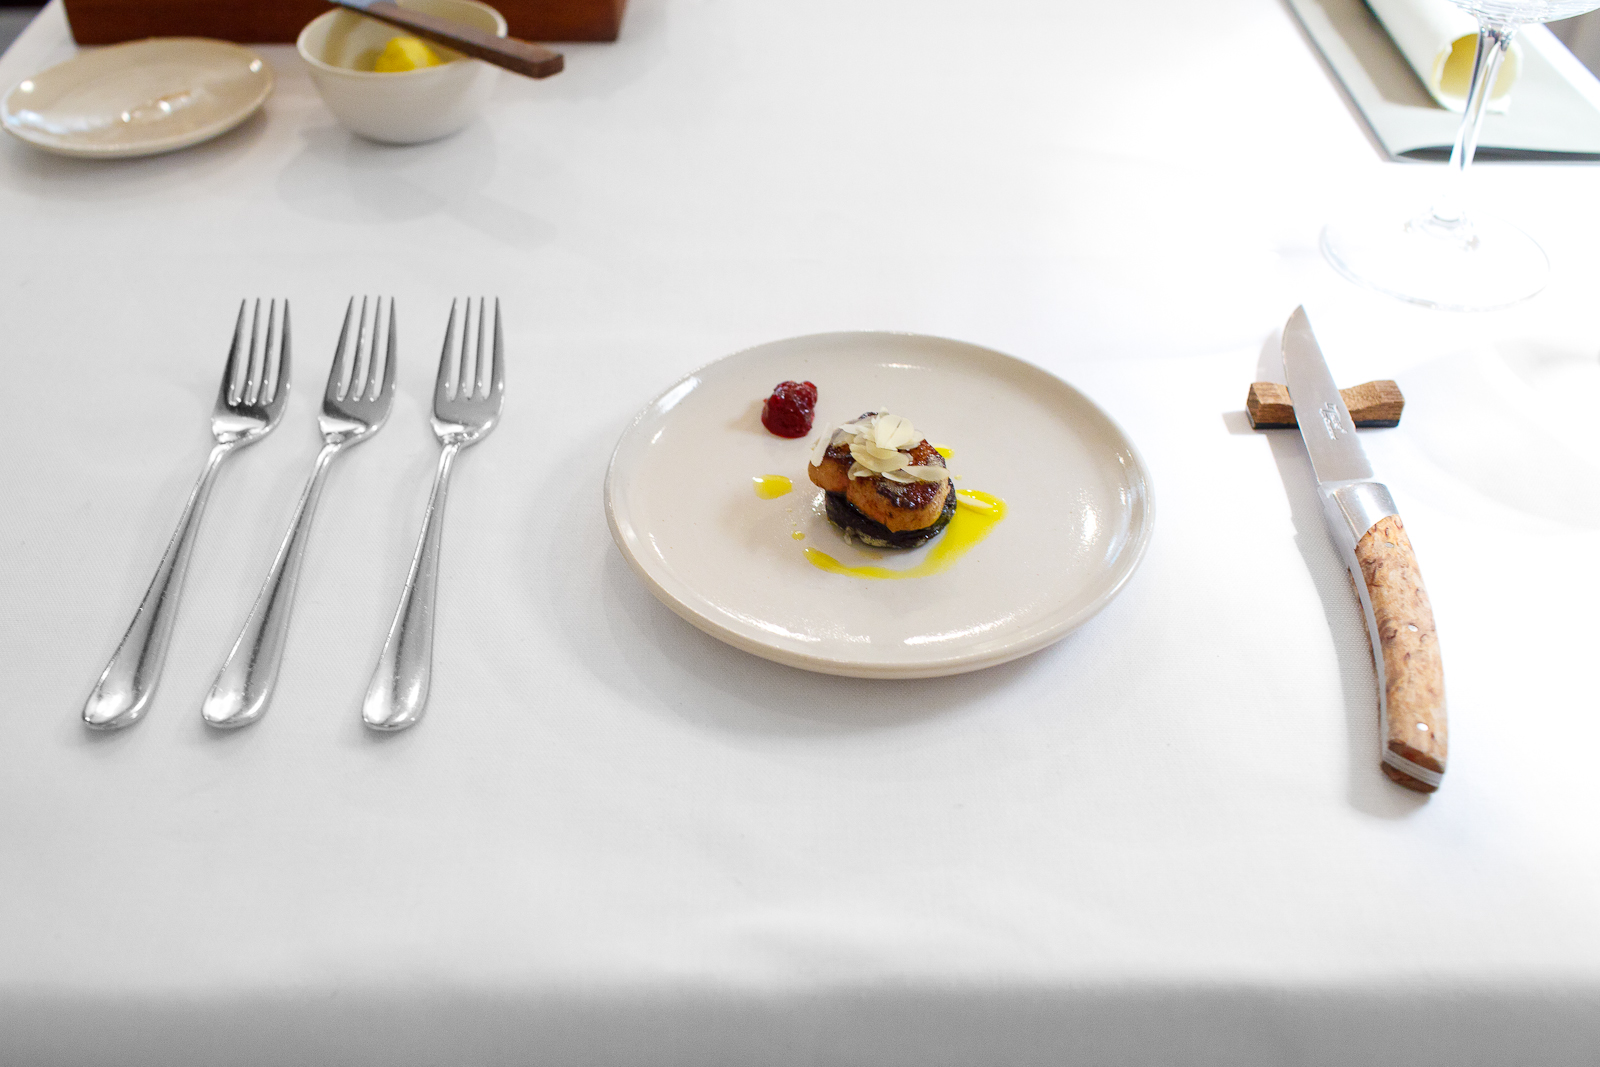 6th Course: First, the blood of the cow with pan-fried natural foie gras, sprouted almonds and preserved lingonberries.